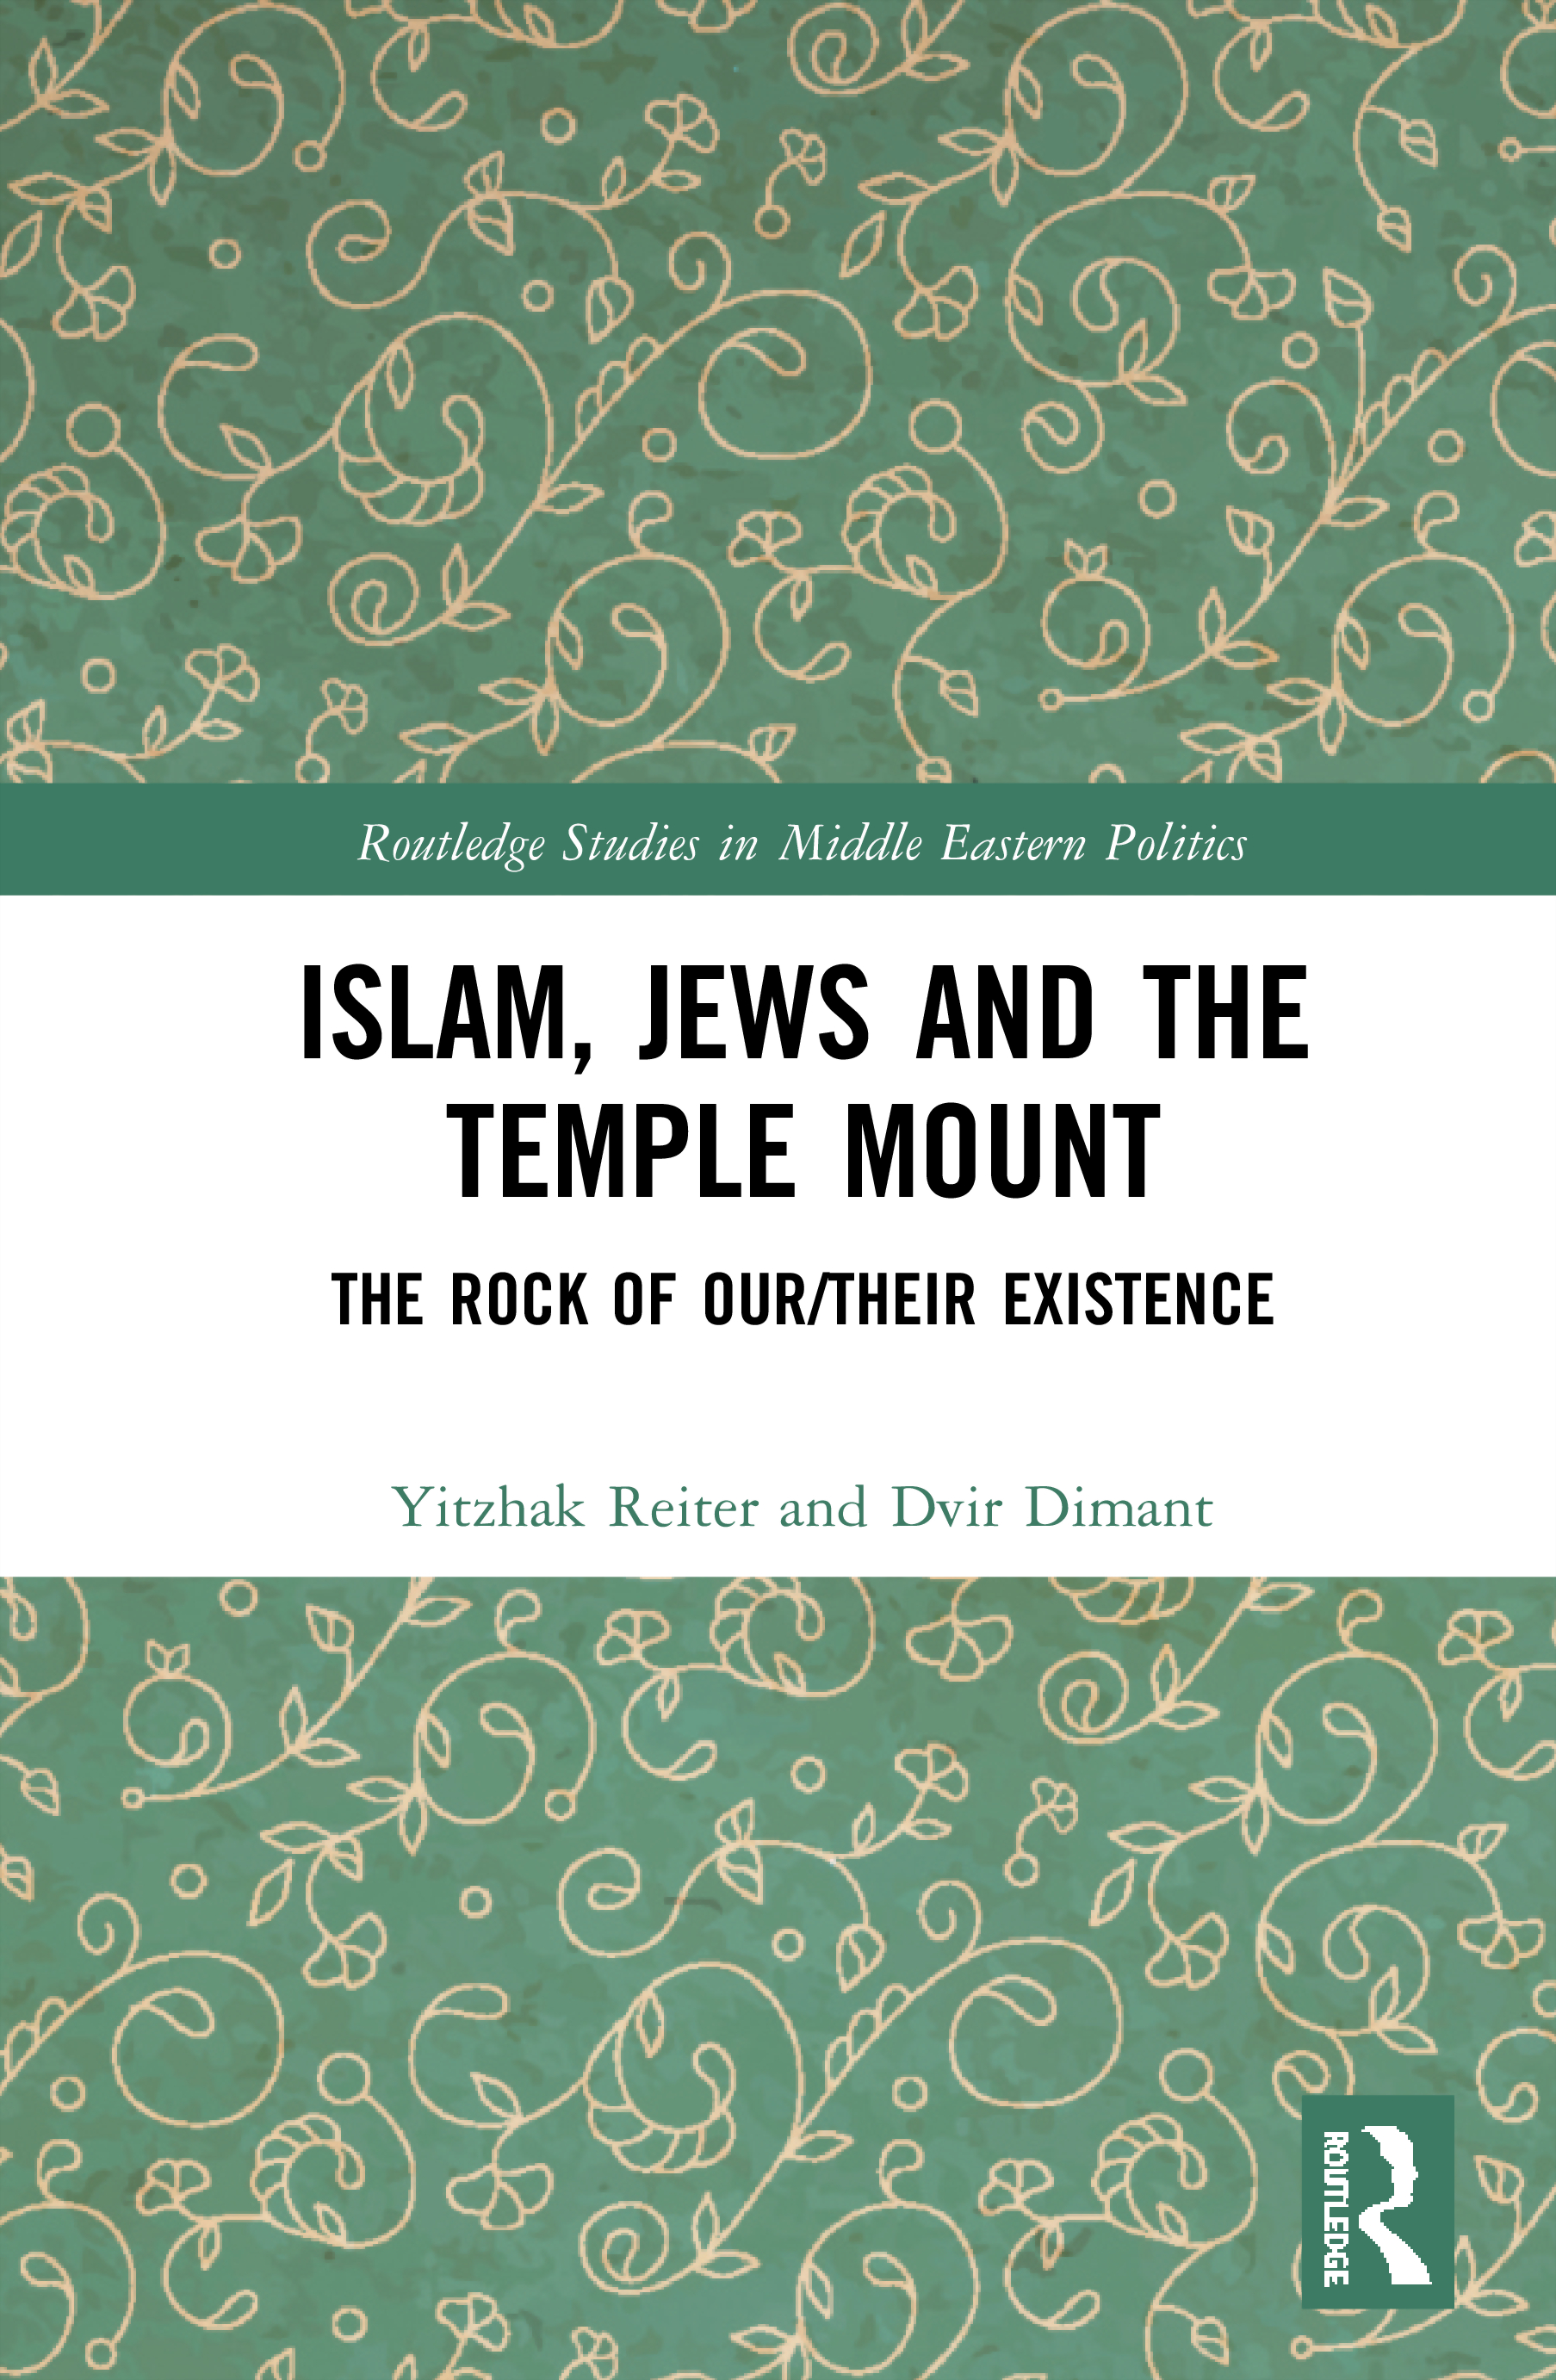 Islam, Jews and the Temple Mount: The Rock of Our/Their Existence book cover